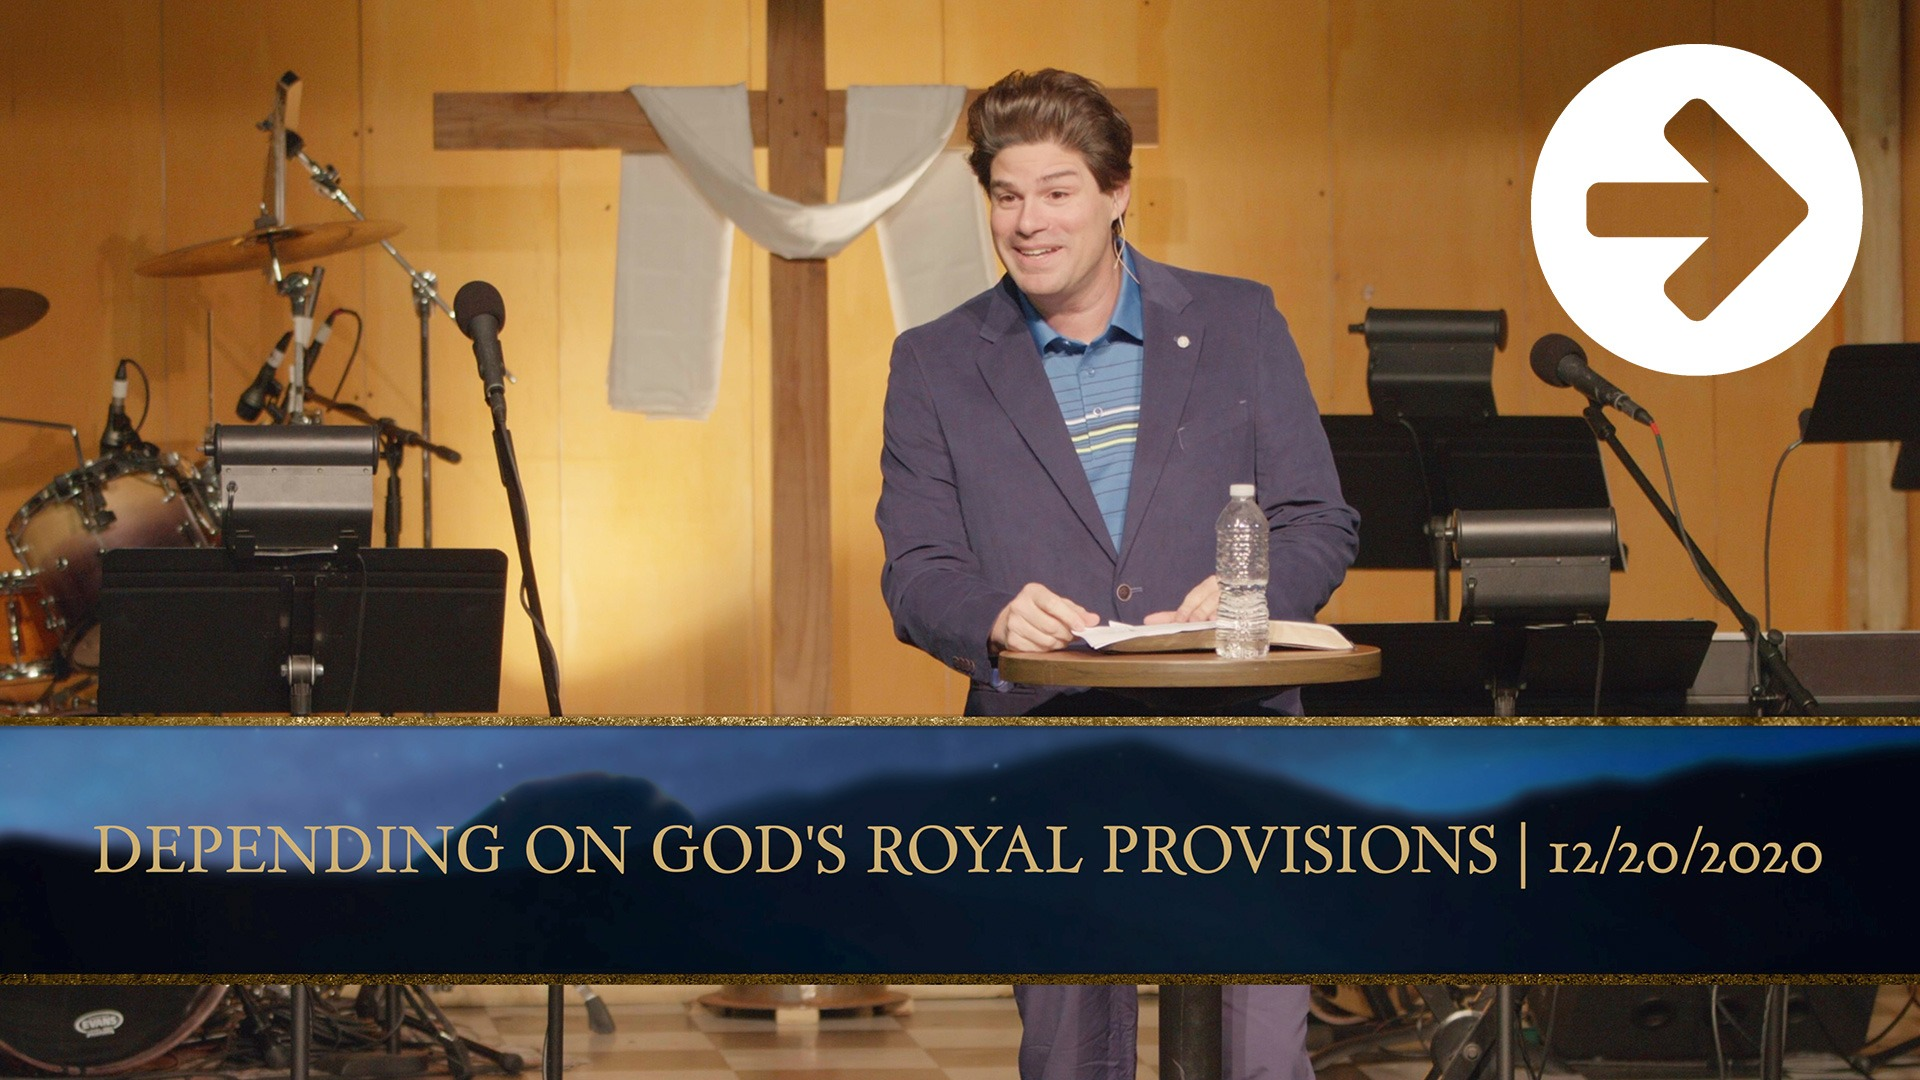 Depending On God's Royal Provisions Image